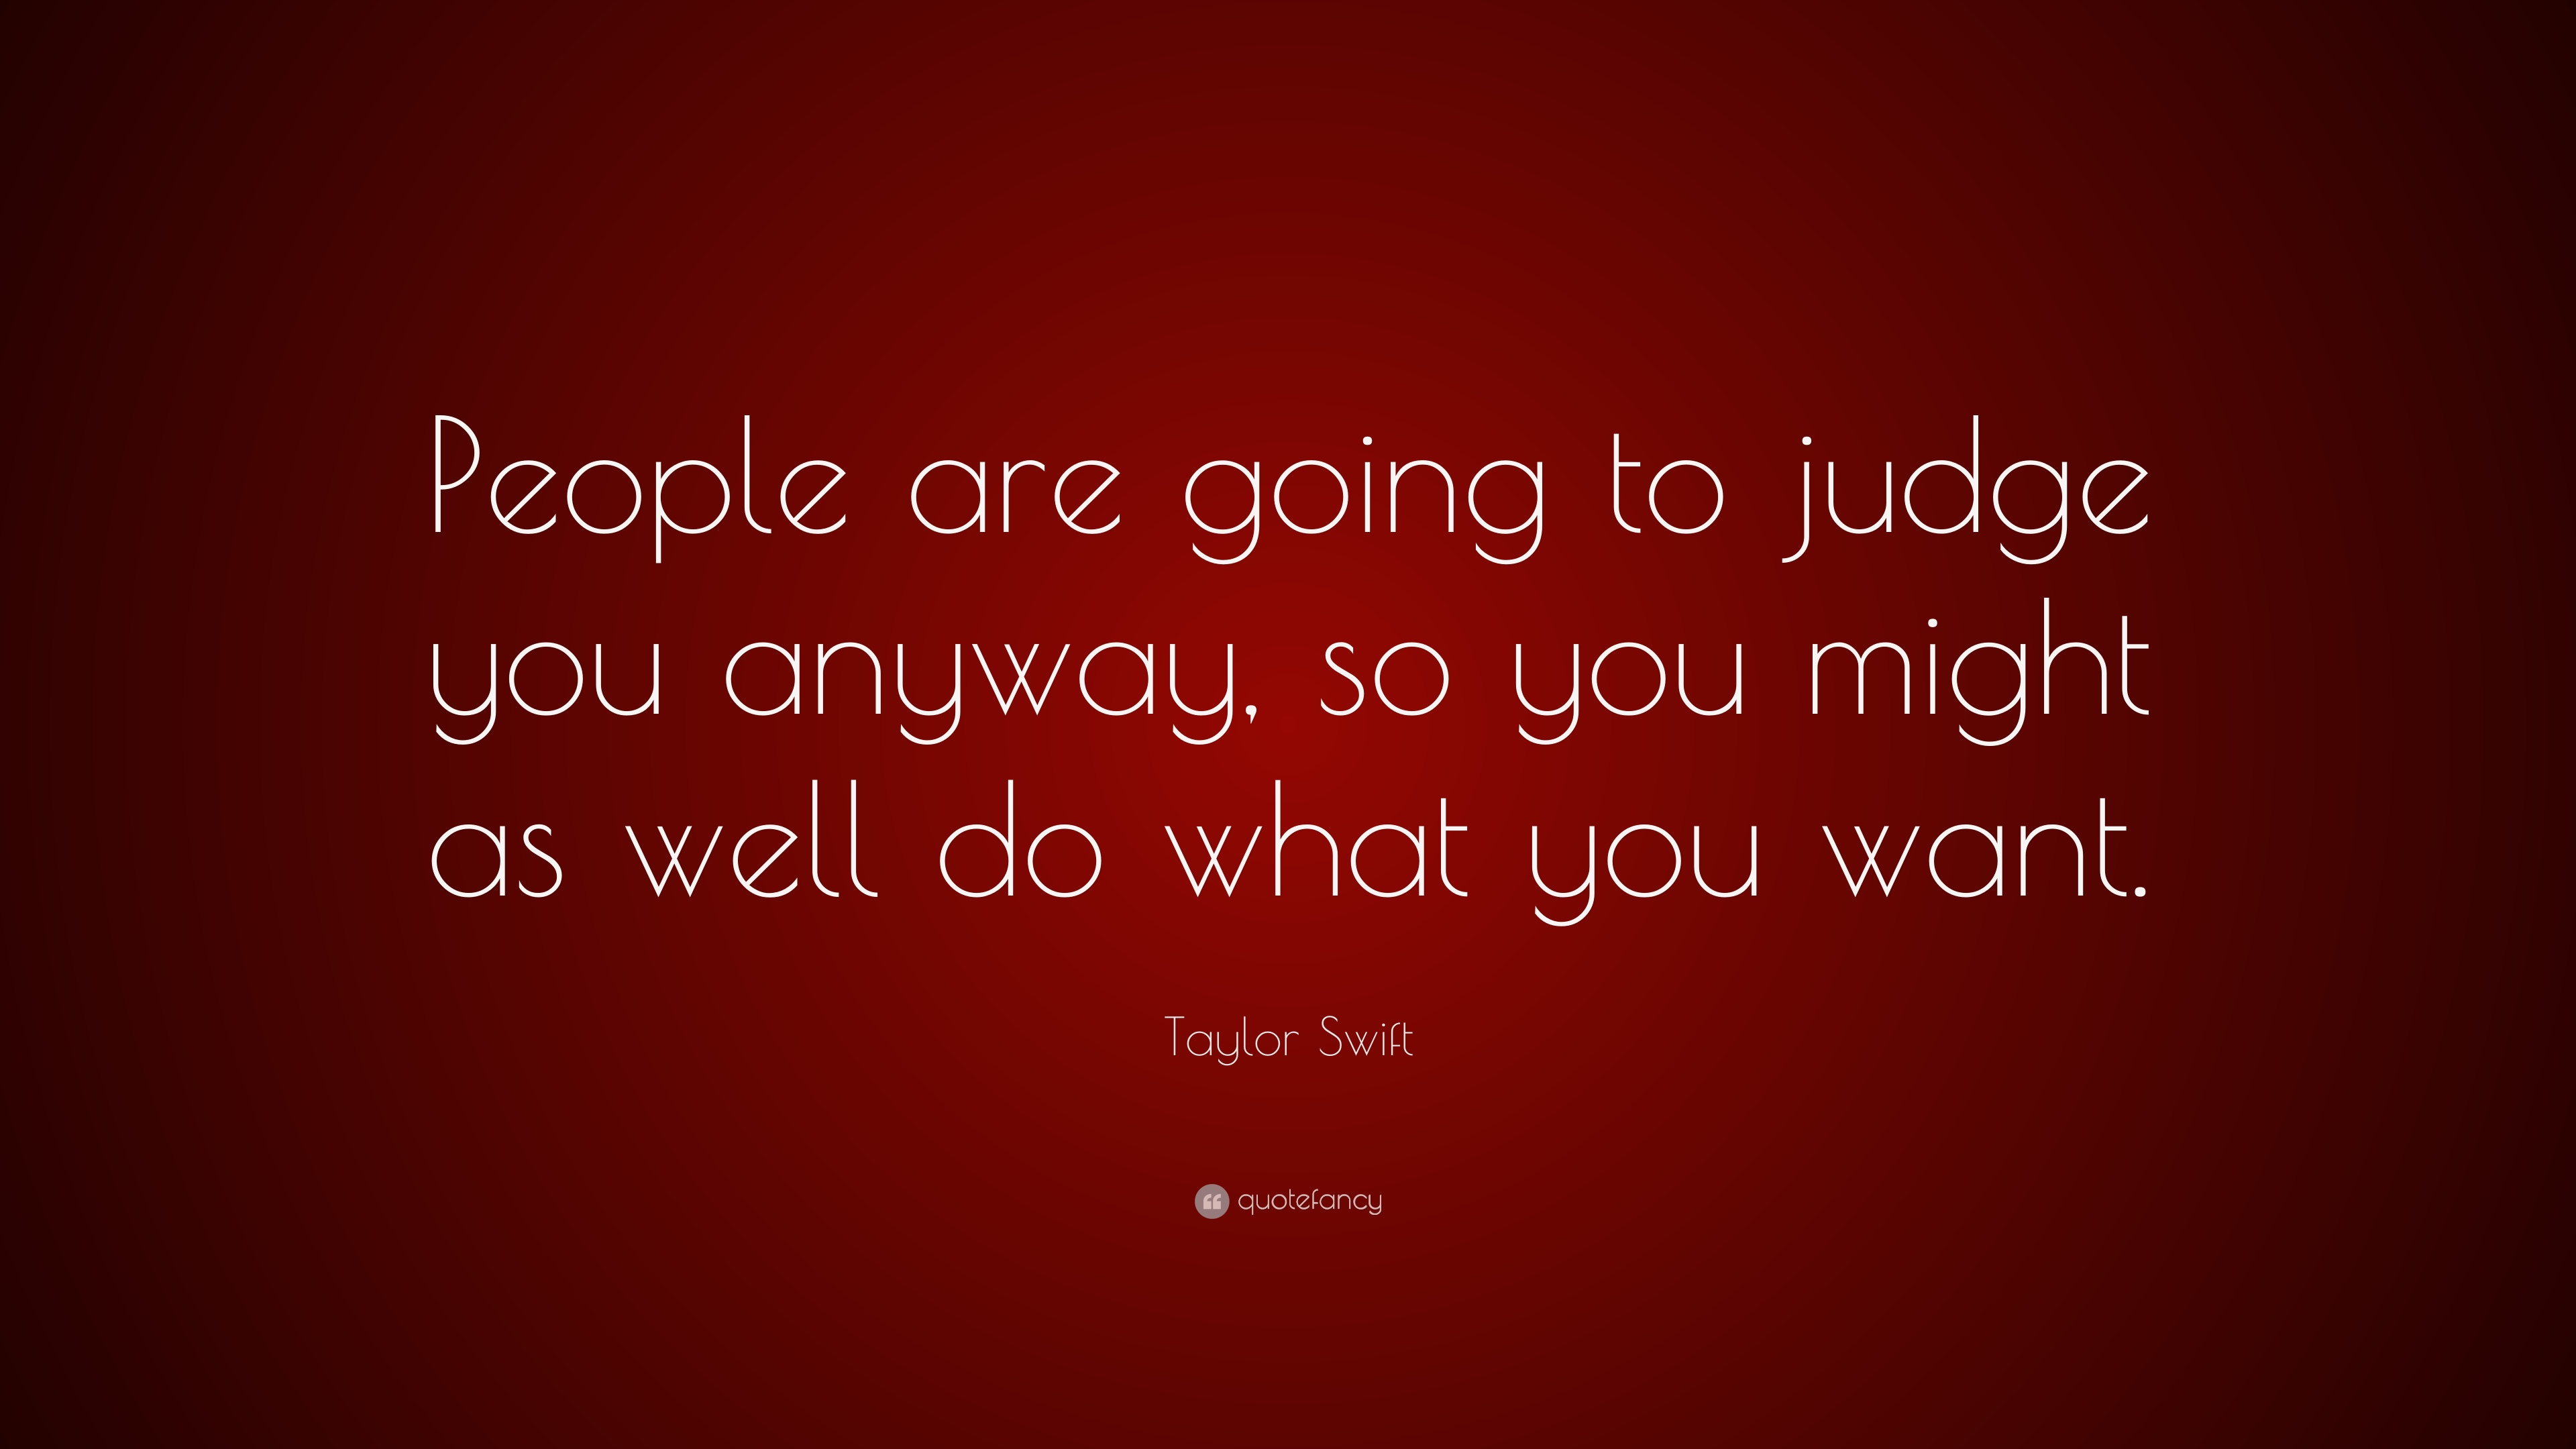 Taylor Swift Quote People Are Going To Judge You Anyway So You